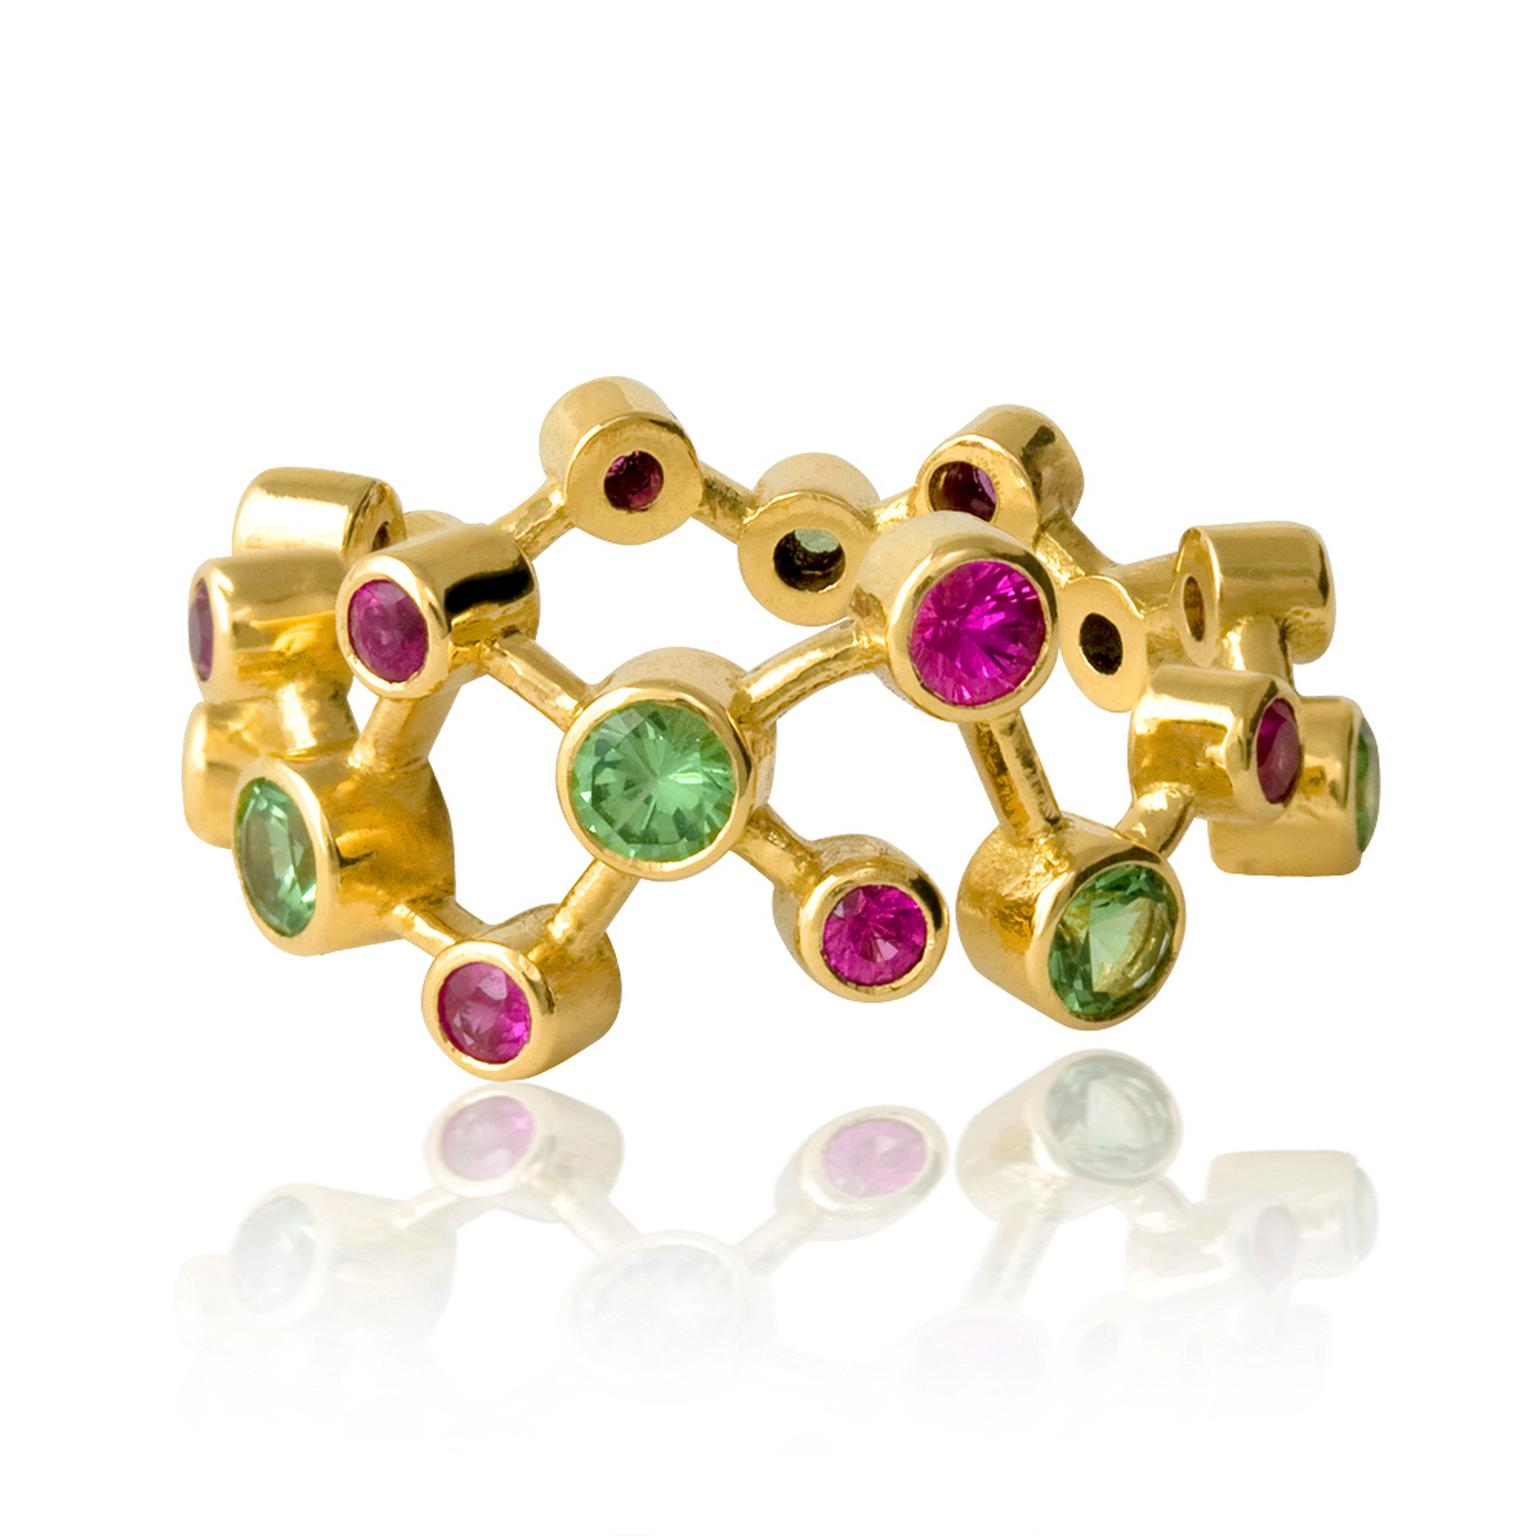 Alexander Davis Dendritic yellow gold ring with pink sapphire and tsavorites